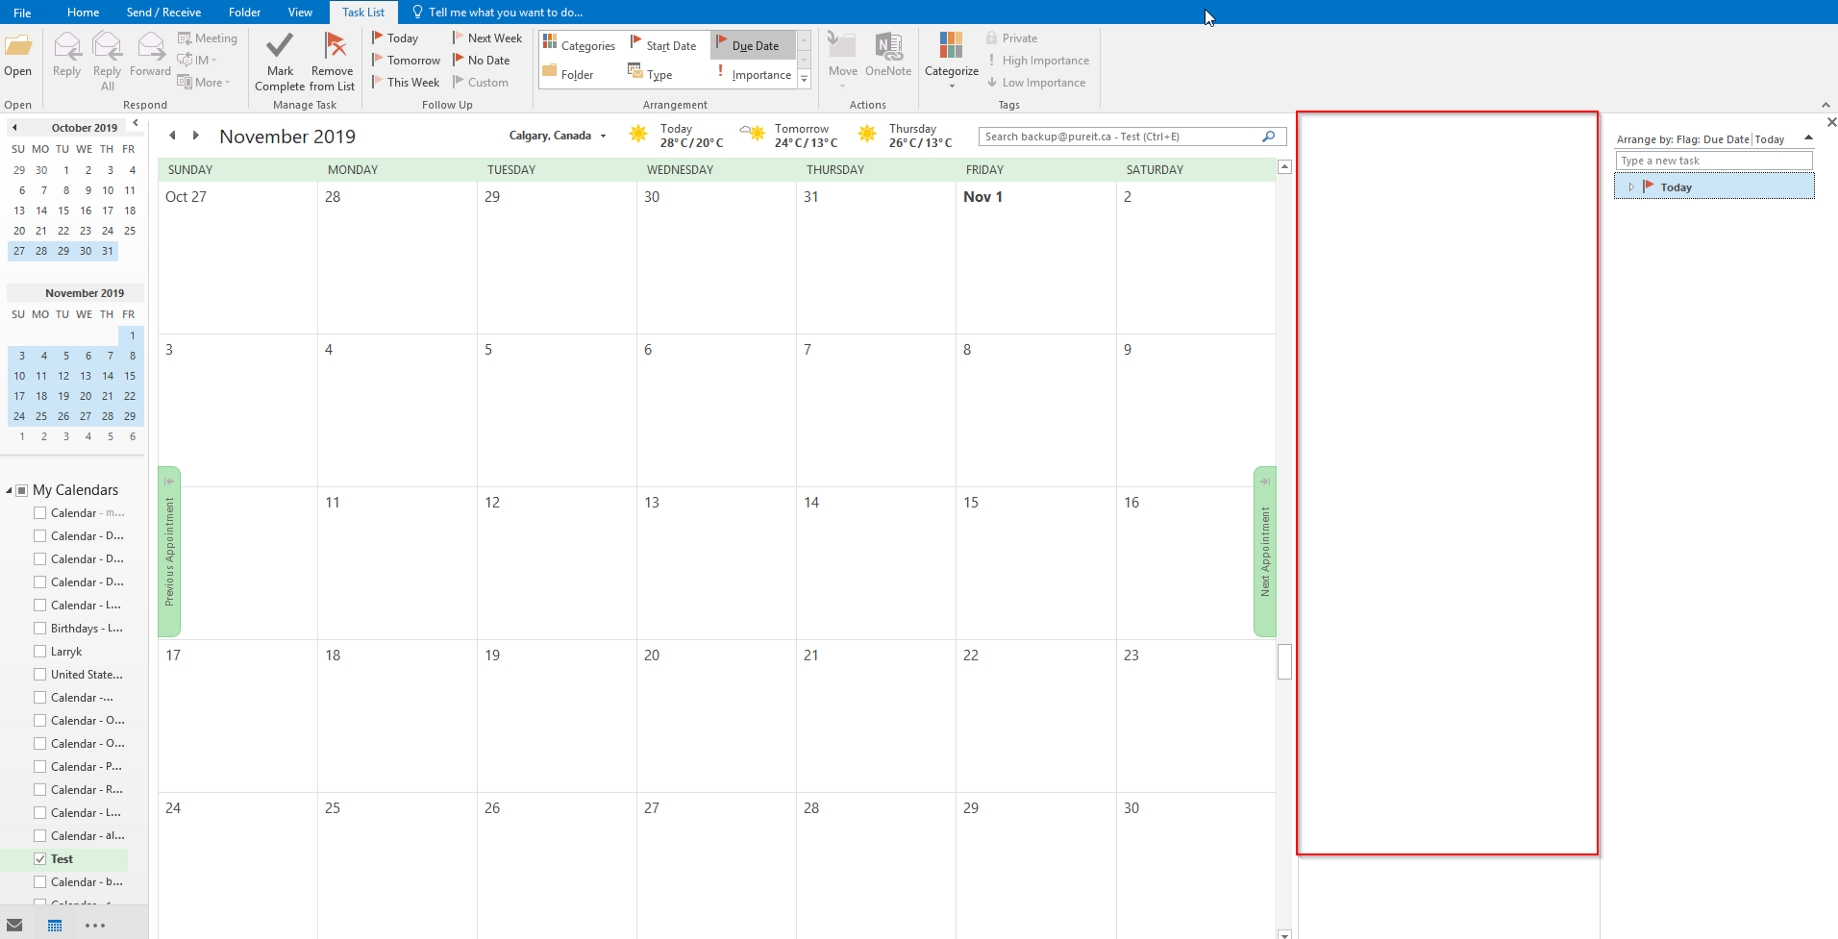 Get Rid Of The Vertical Blank Column In Outlook Calendar_Calendar Blank In Outlook